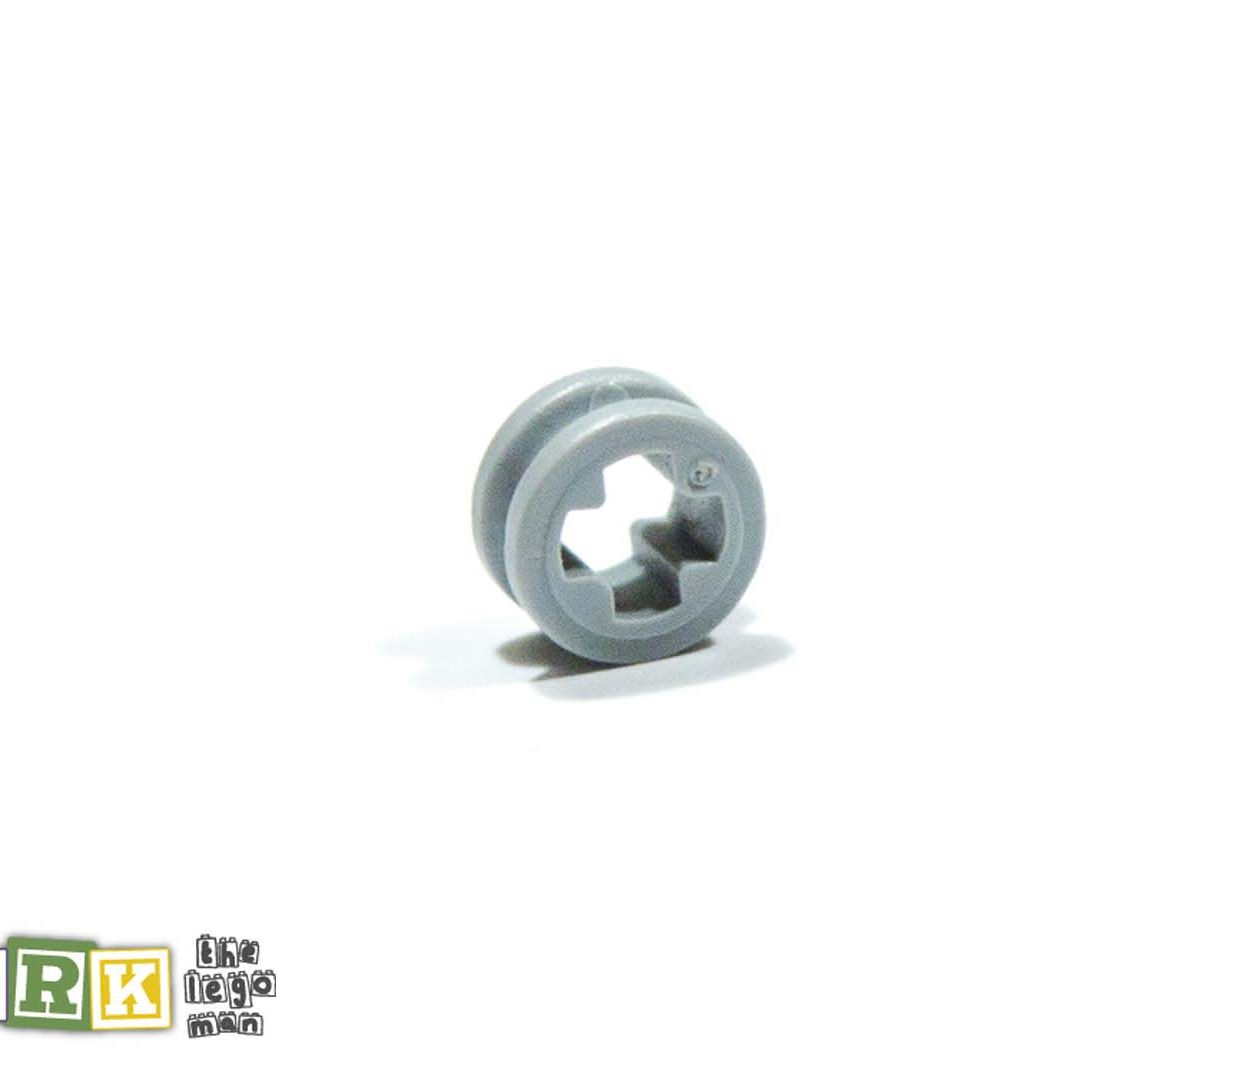 Lego 4211573 32123 1x Light Blueish Grey Md Stone Medium Standard Grey Half a bush